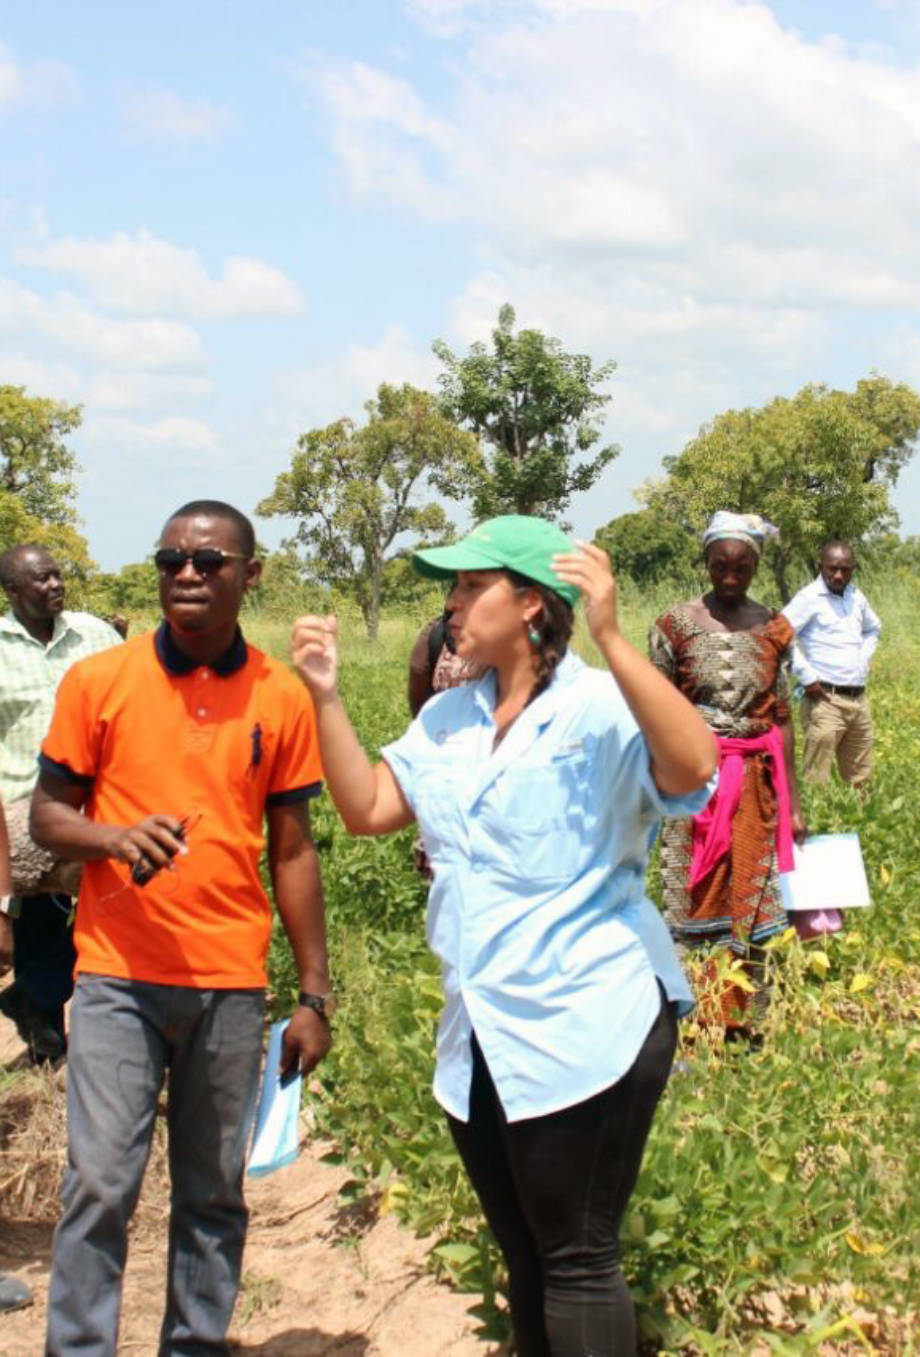 Carrie Miranda talks to local farmers and smallholders in Ghana about soybeans. She has been doing research in Ghana since June as a U.S. Borlaug Fellow in Global Food Security. Photo courtesy of Carrie Miranda.